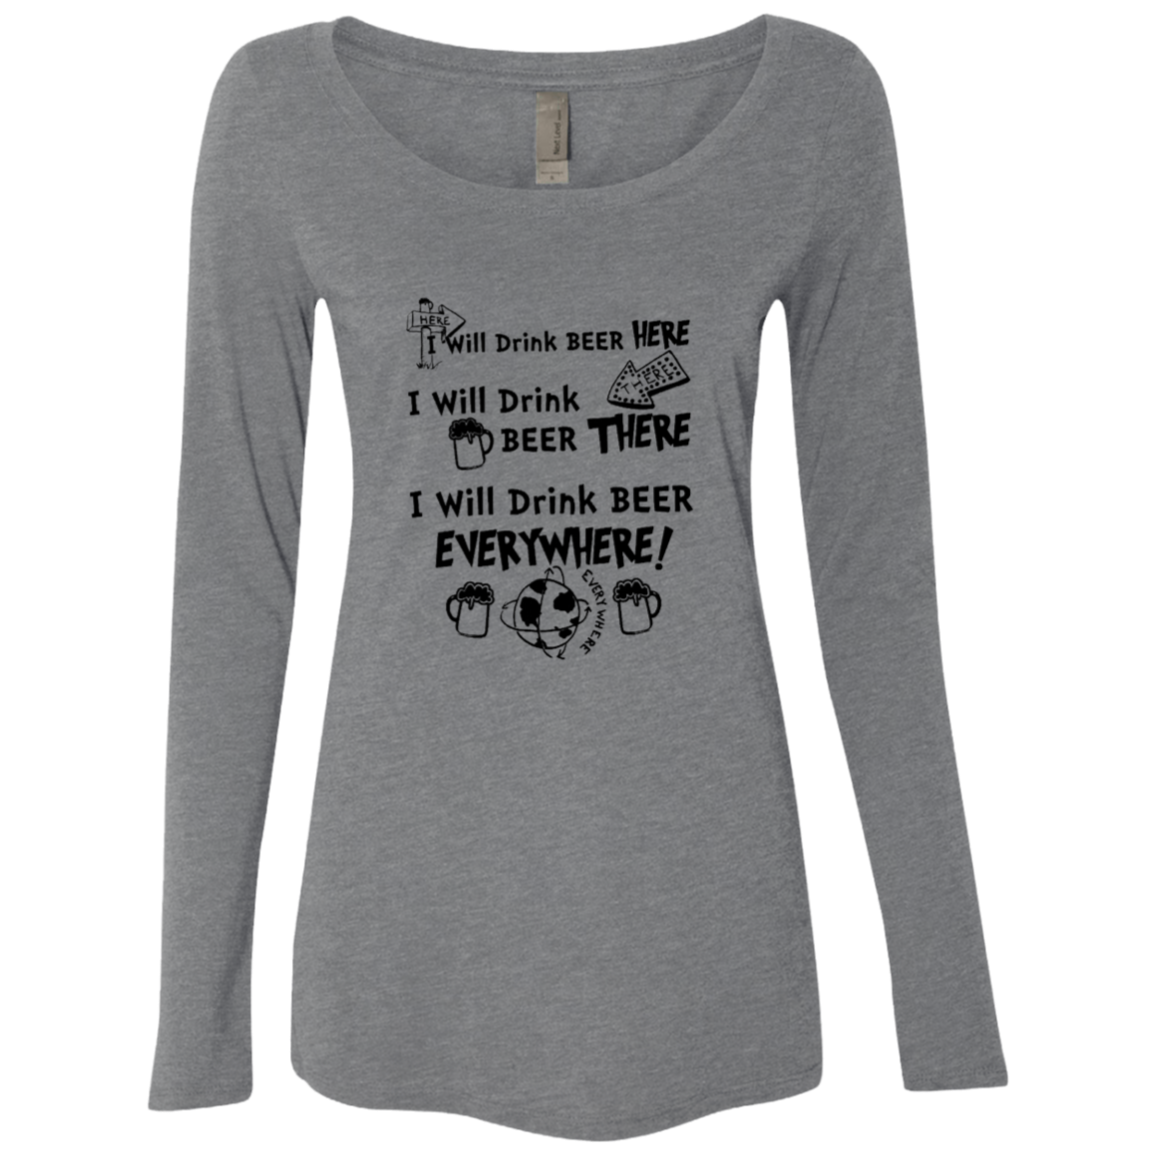 I Will Drink Beer Here I Will Drink Beer There I Will Drink Beer Everywhere Women's Long Sleeve Tee